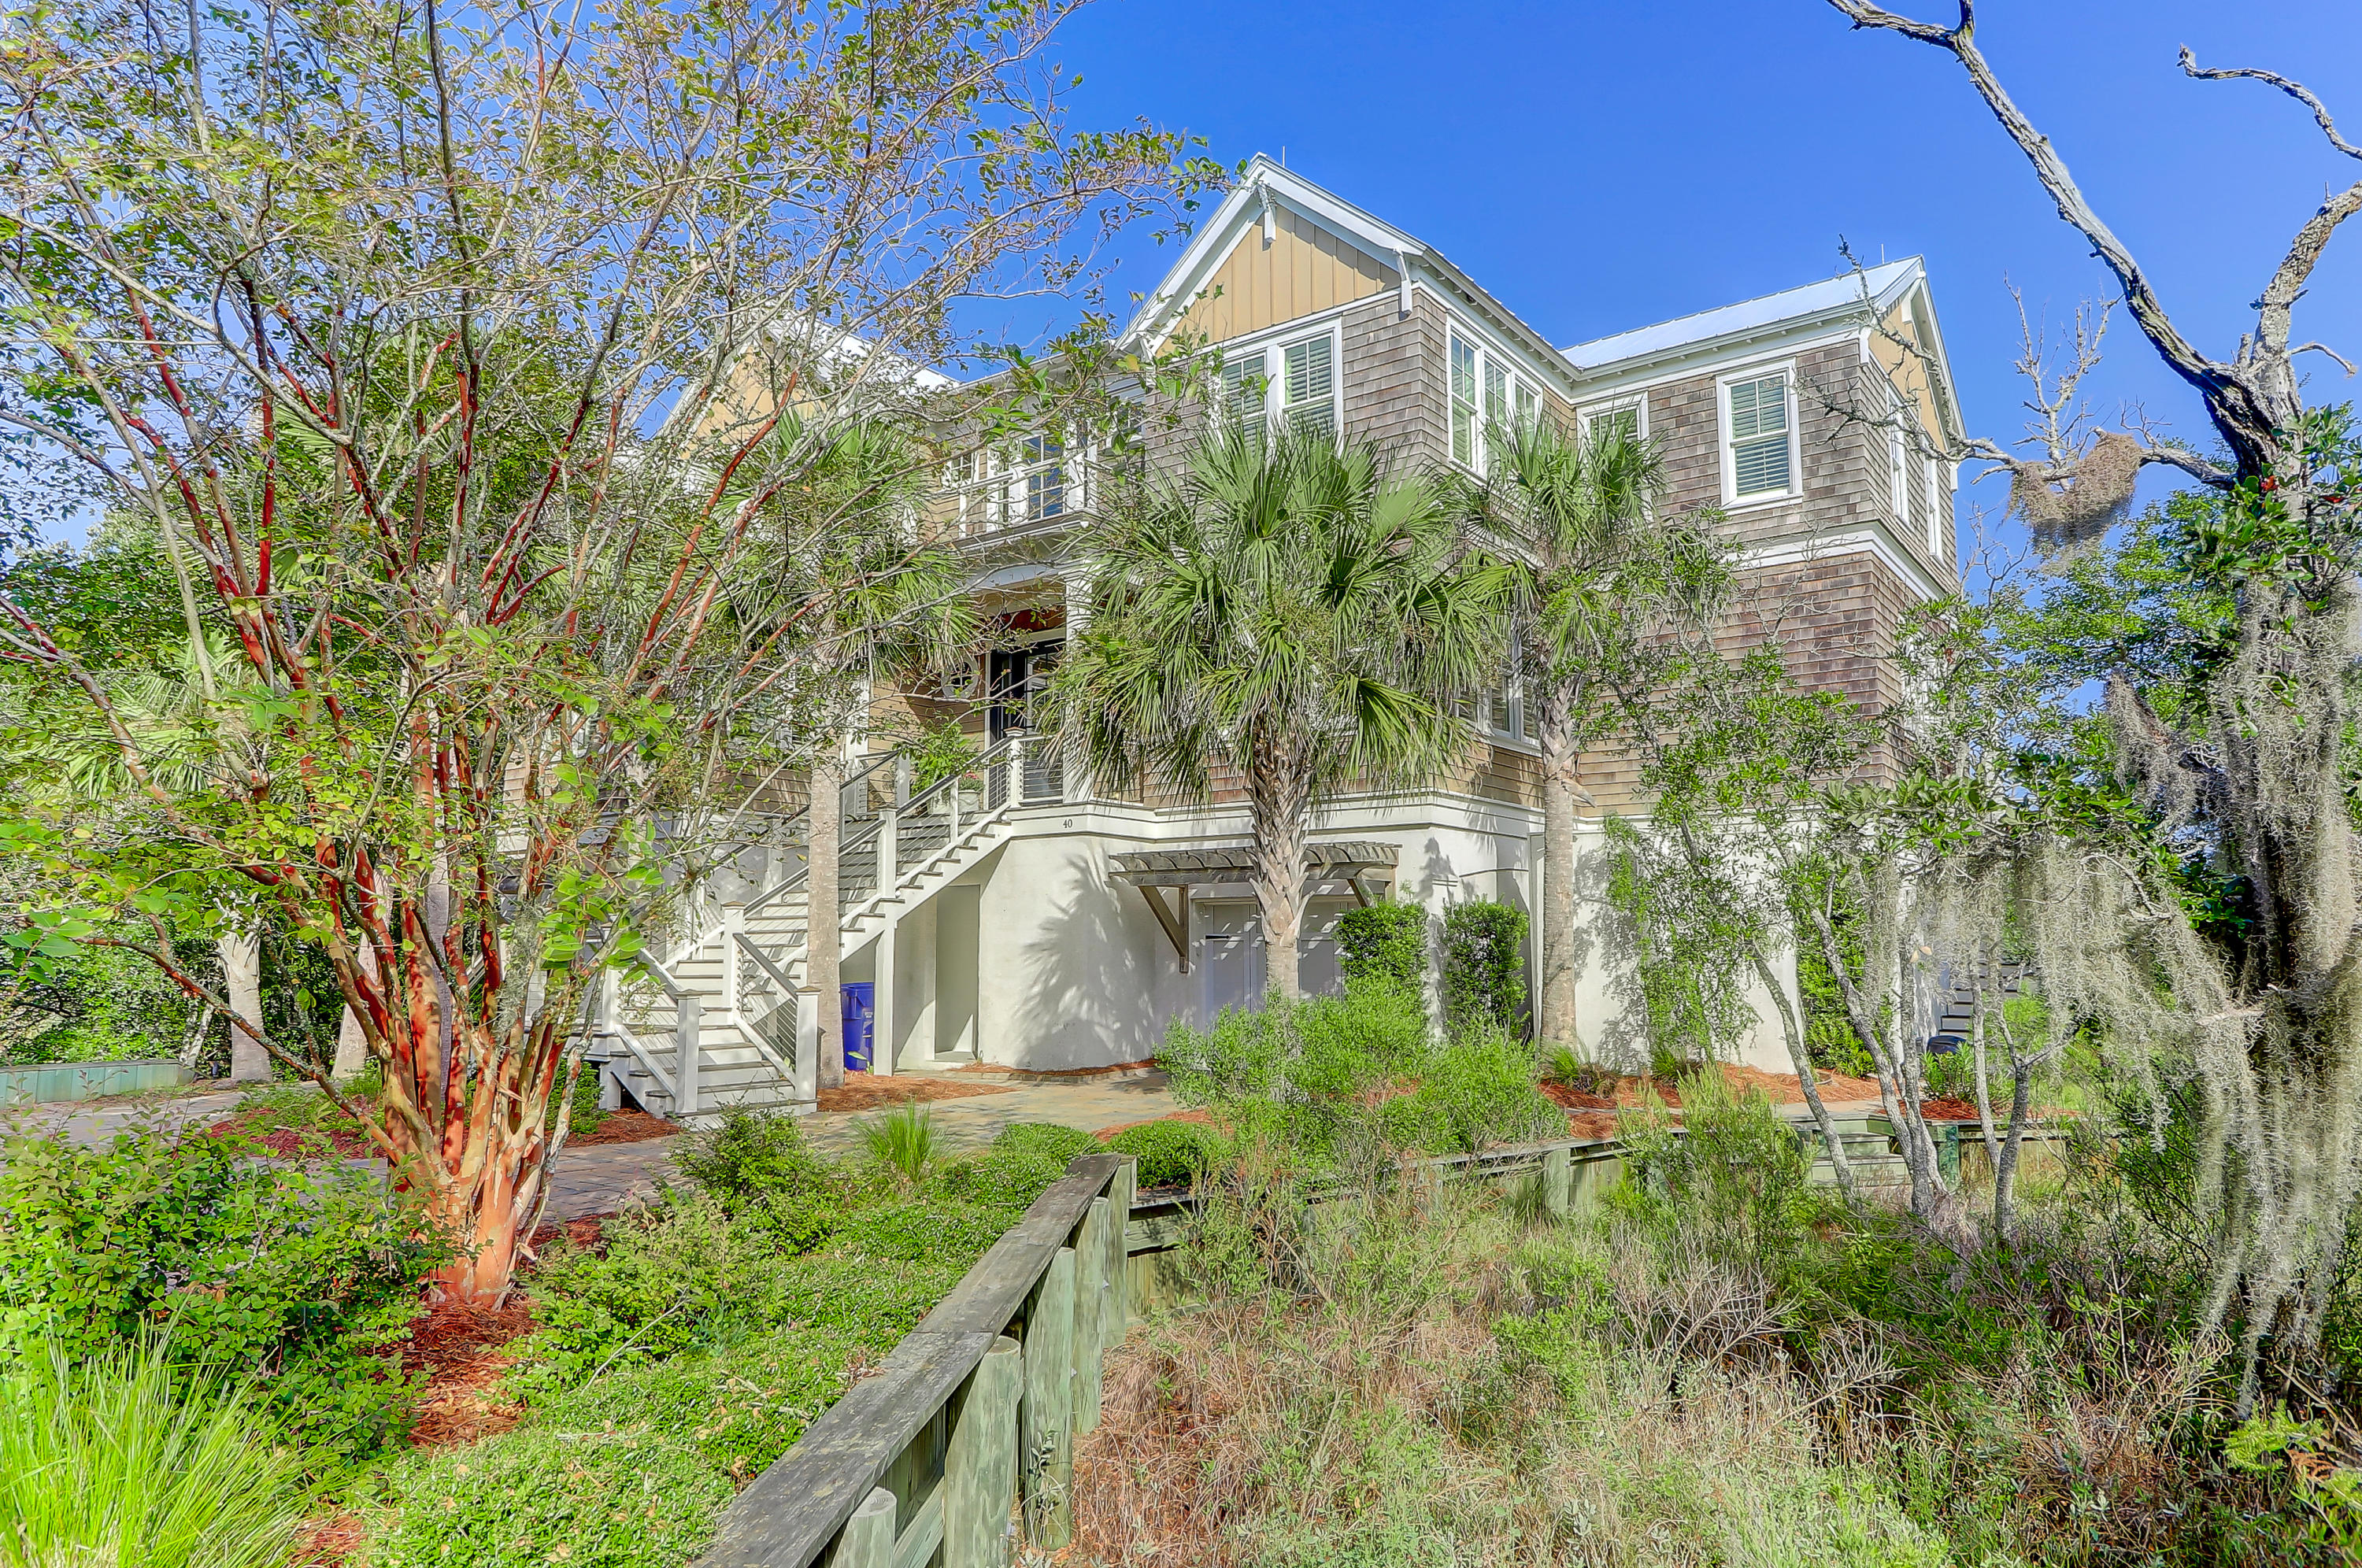 Wild Dunes Homes For Sale - 40 Seagrass, Isle of Palms, SC - 18